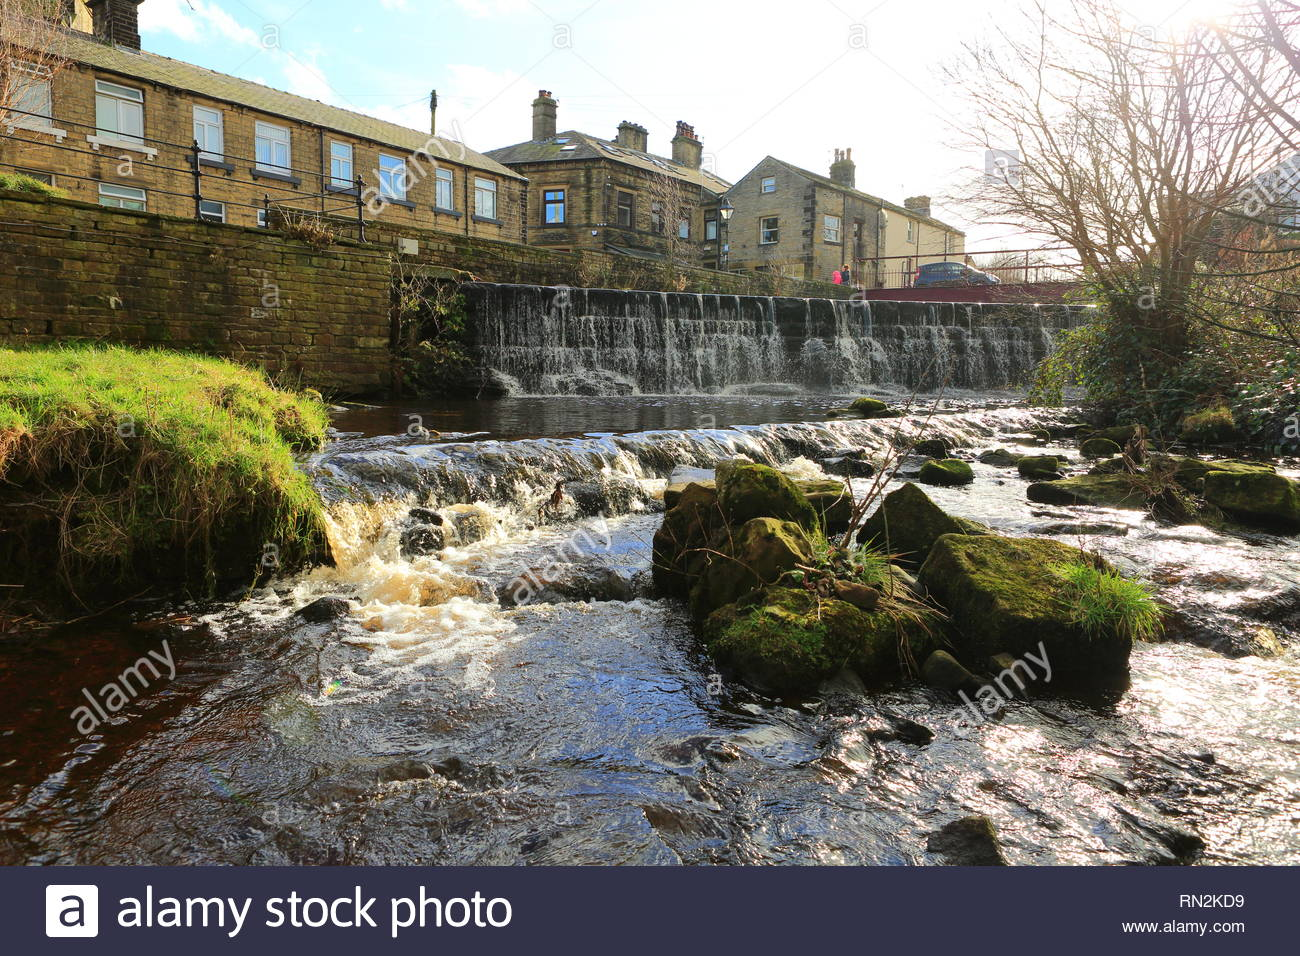 The overspill on the River Colne at Marsden UK - Stock Image